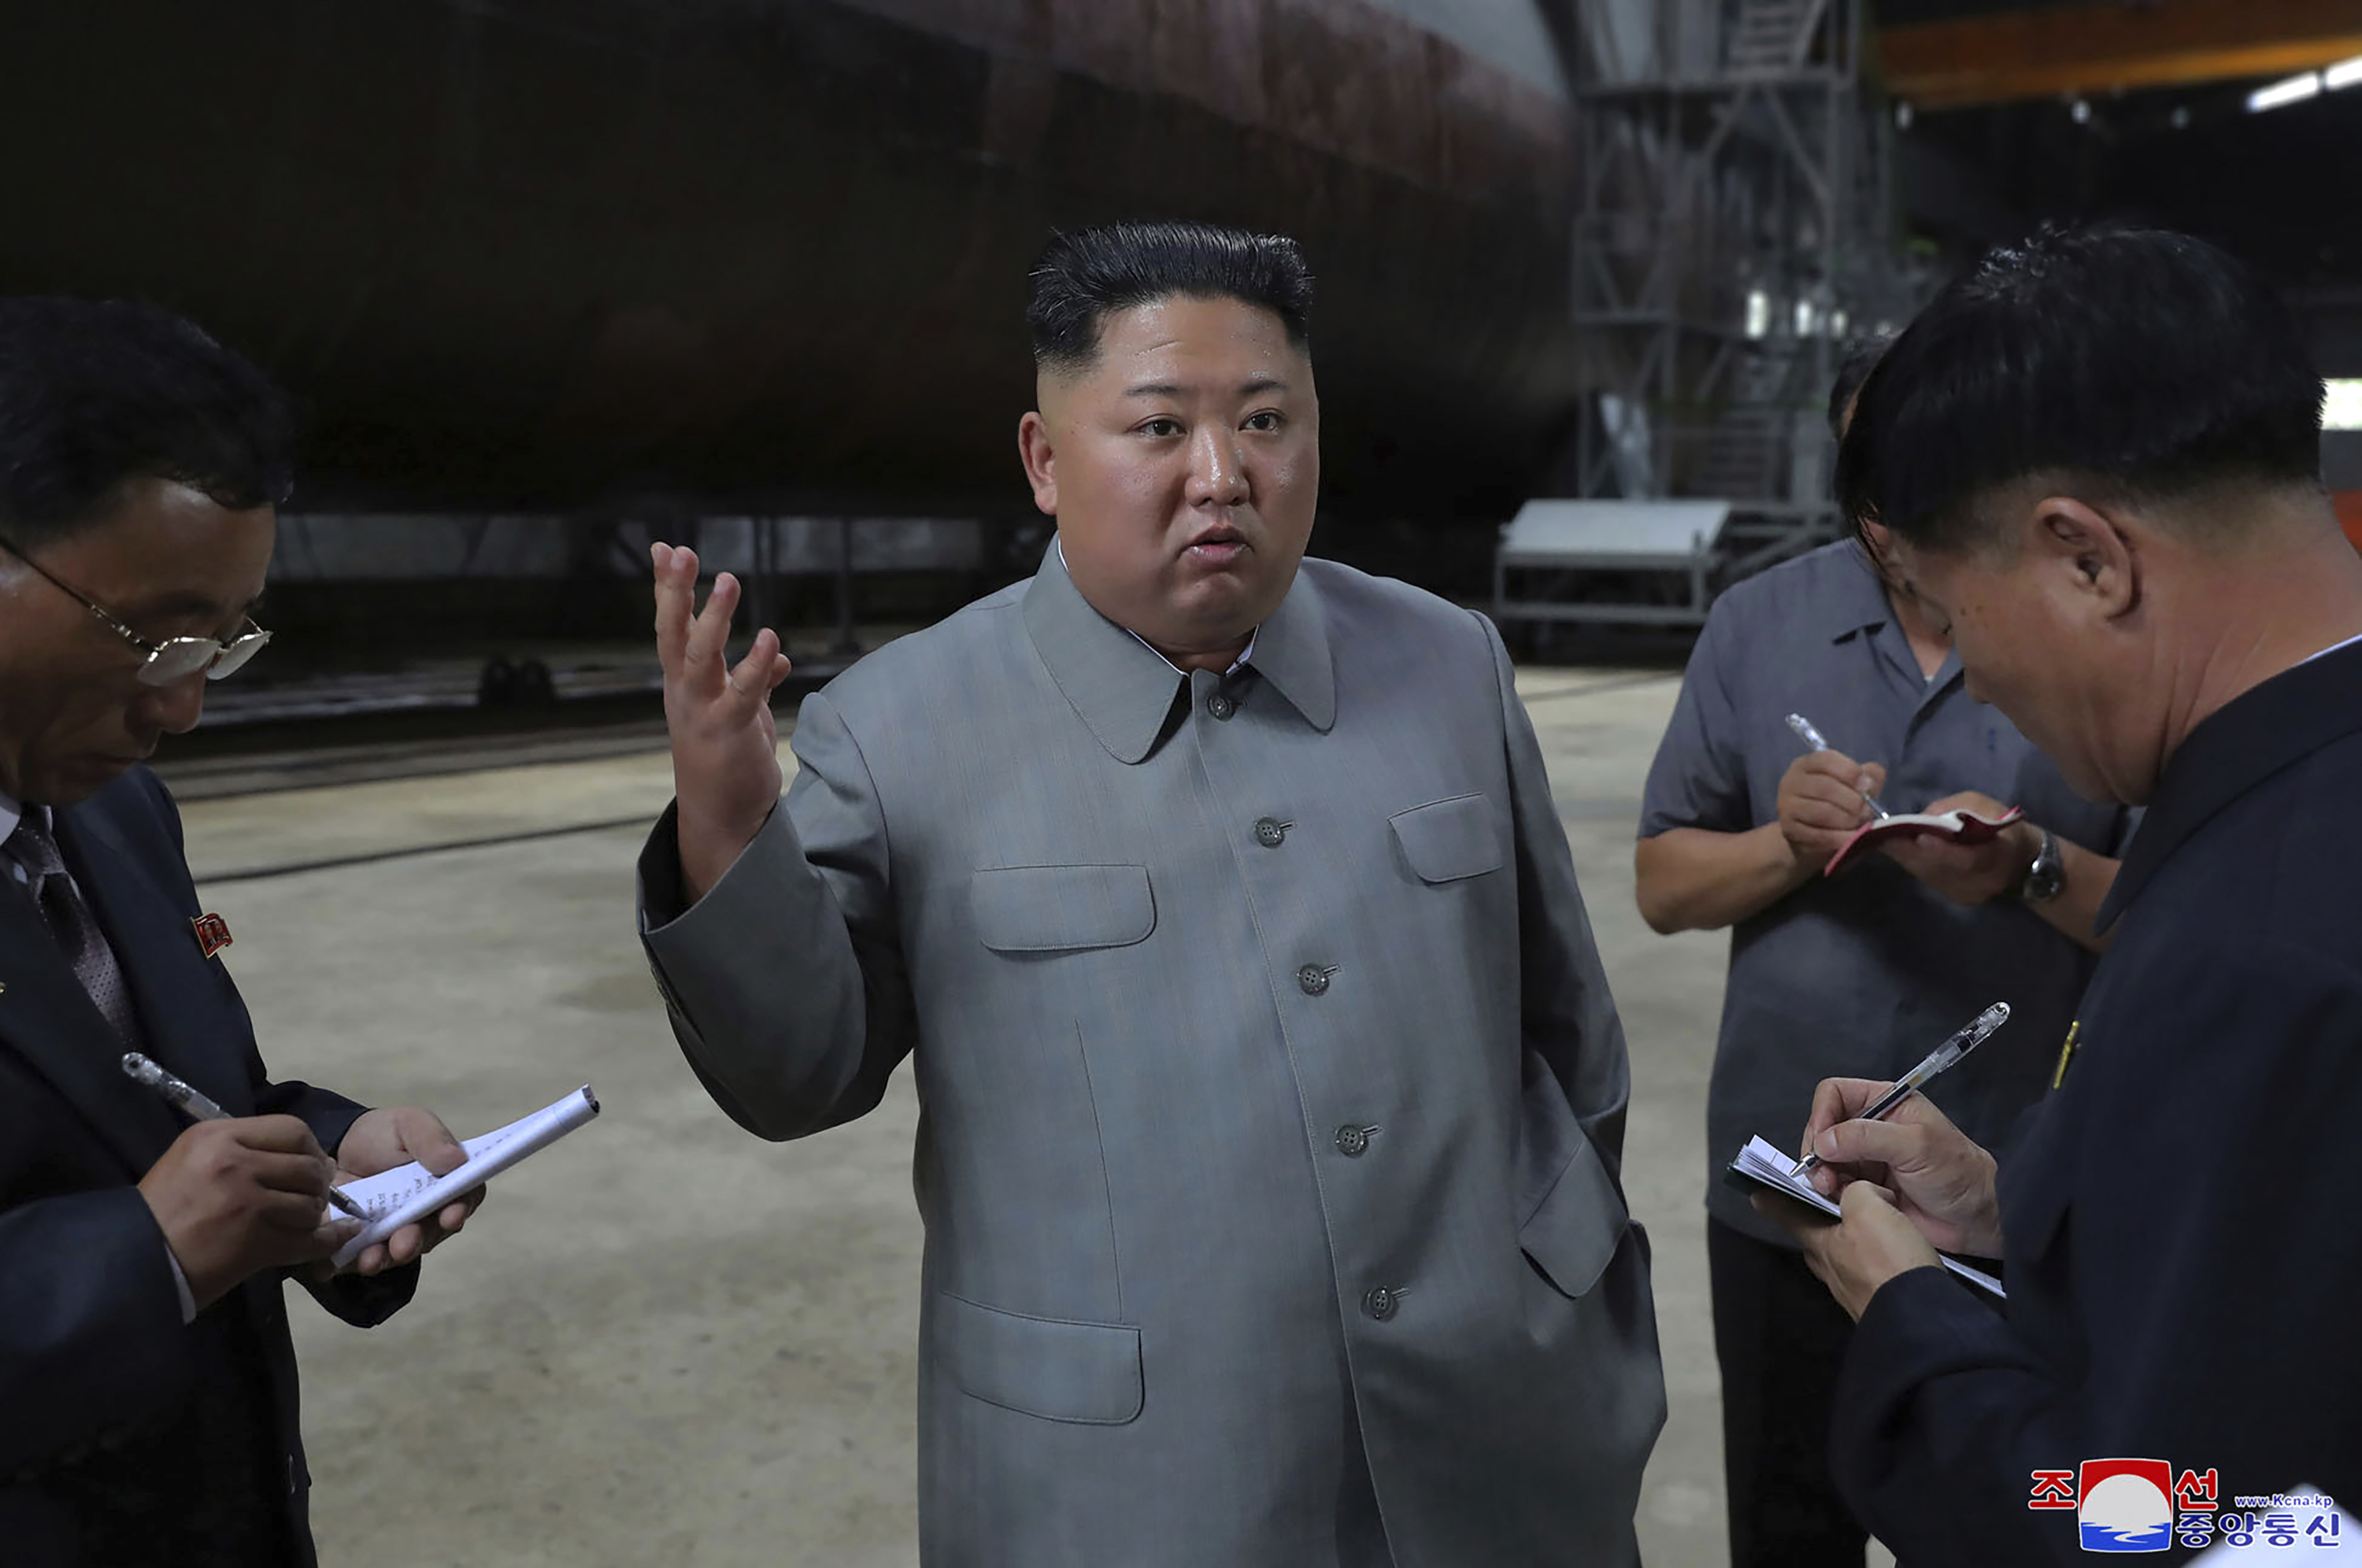 Kim inspects new sub, wants North Koreas military bolstered